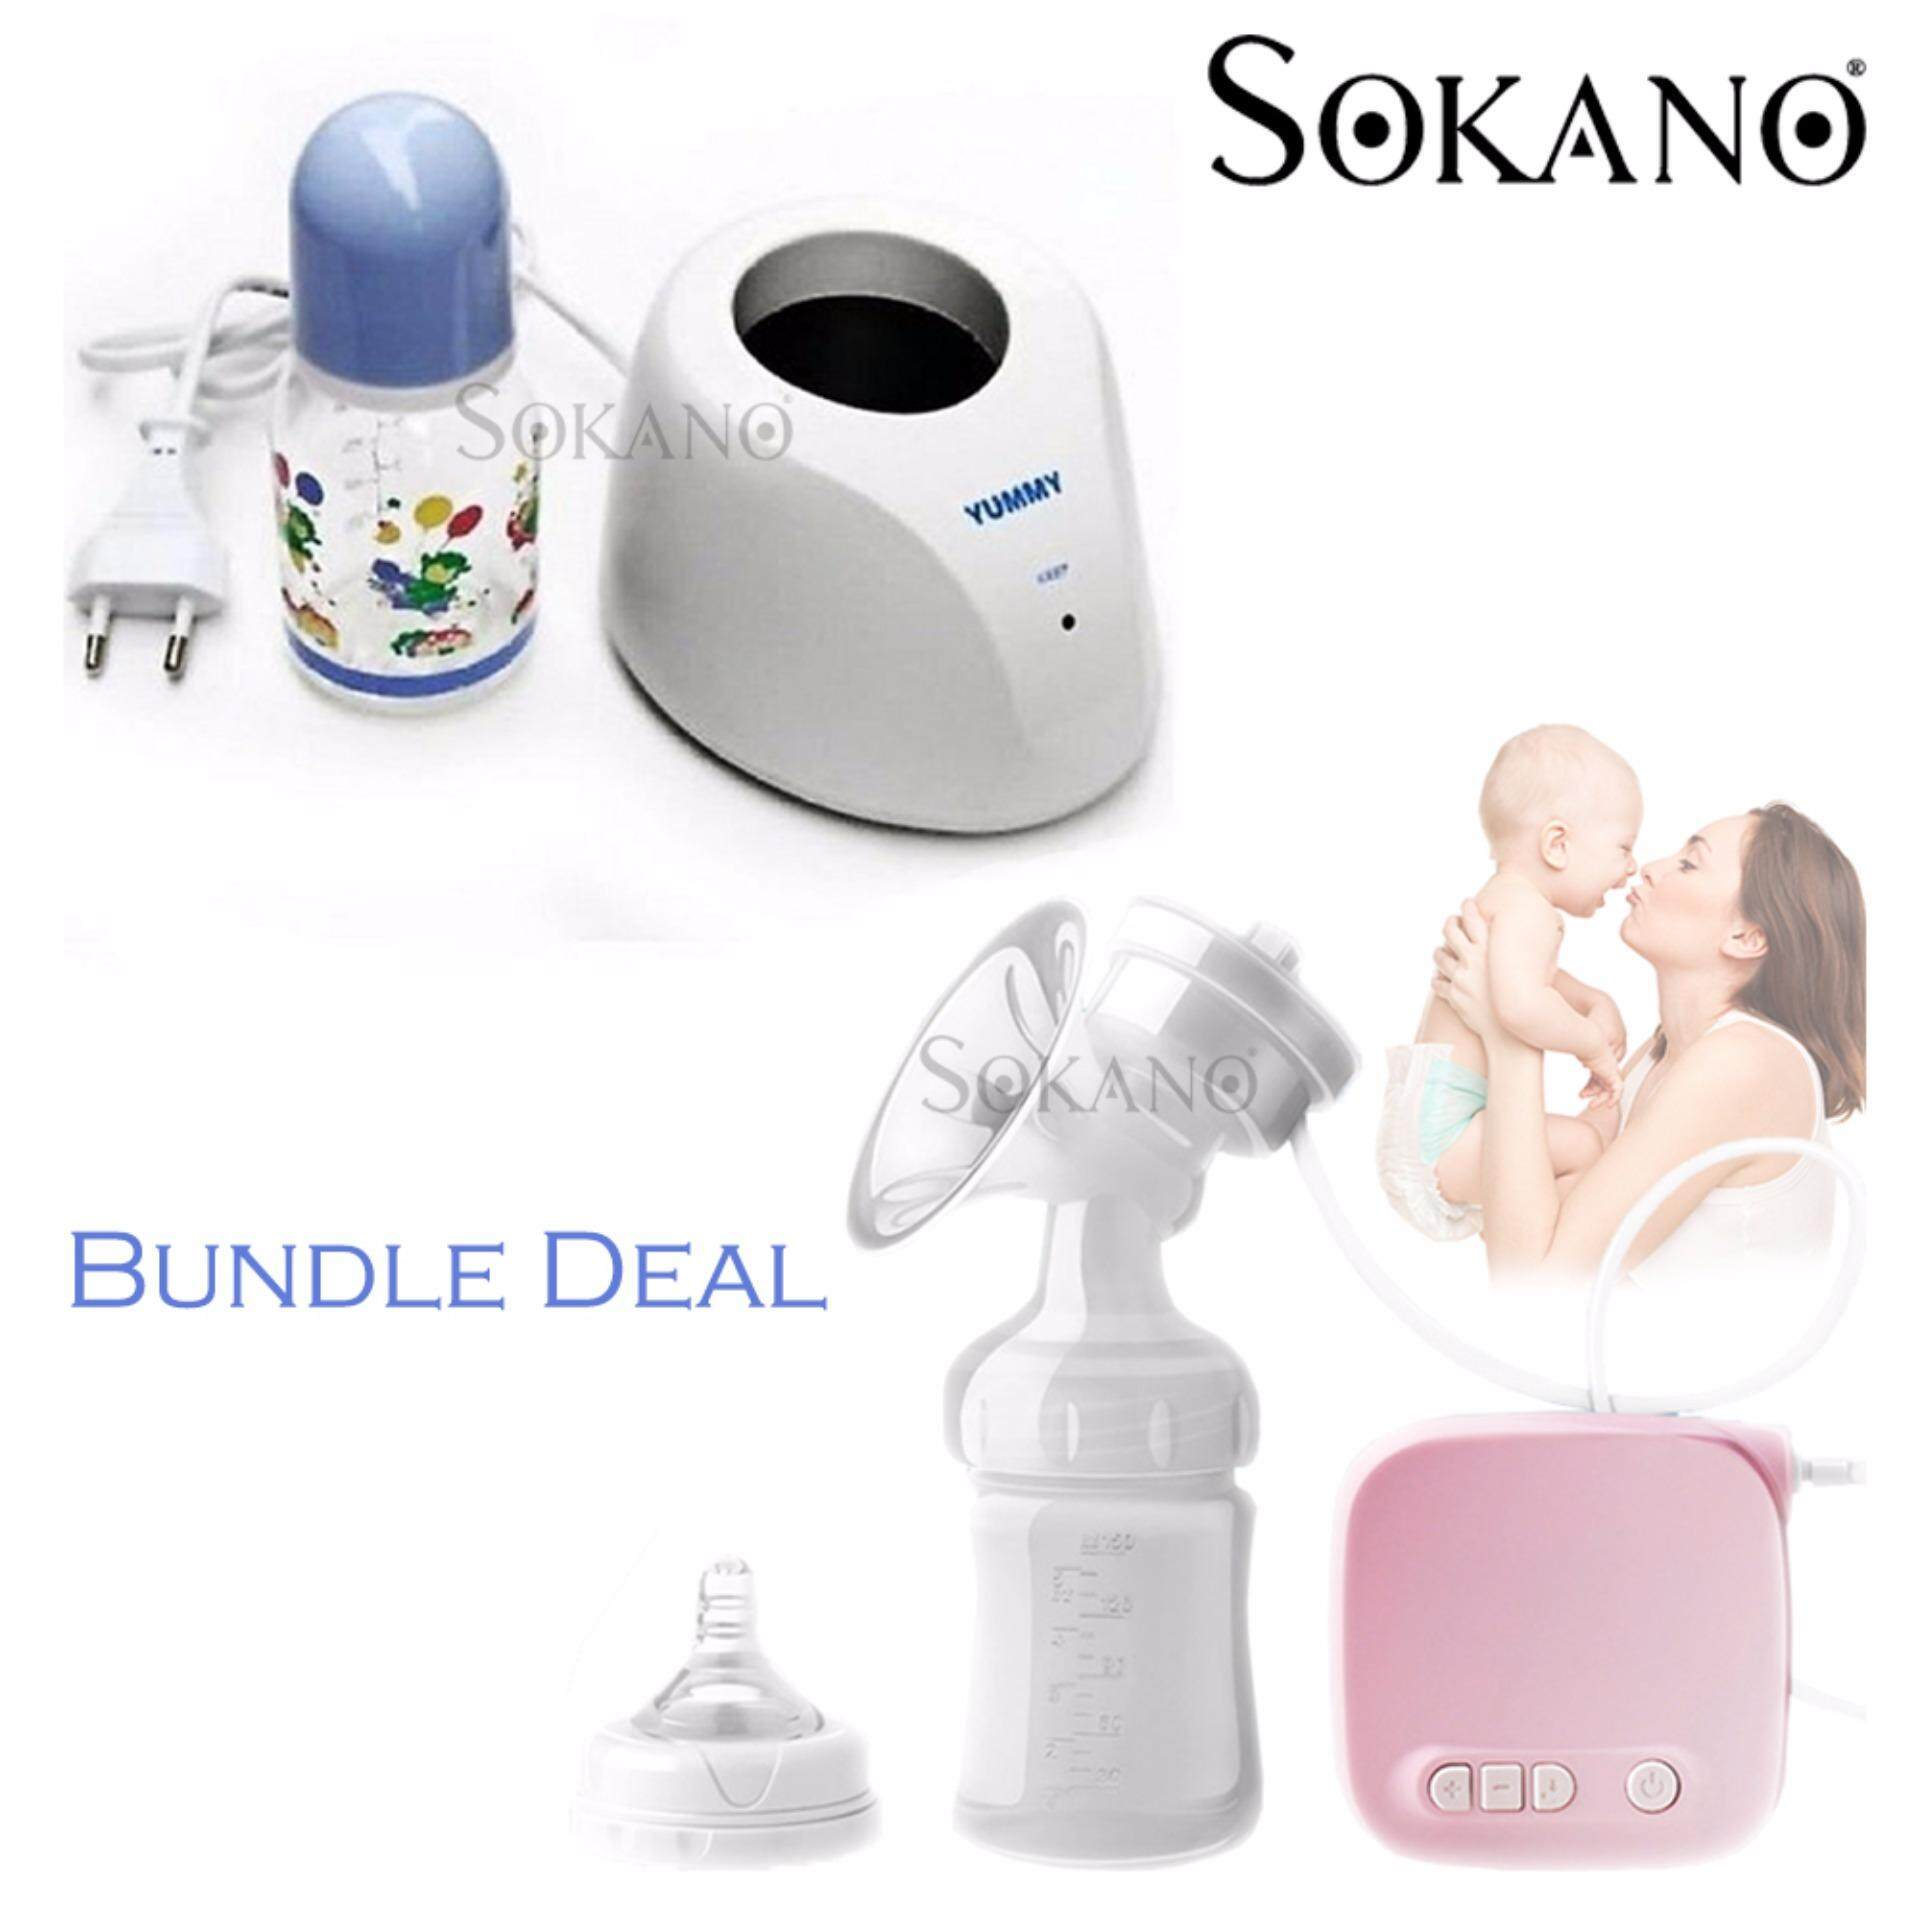 Bundle : SOKANO Yummy Milk Warmer with Free Milk Bottle + Advance Electric Breast Pumps - Super Suction & Massage